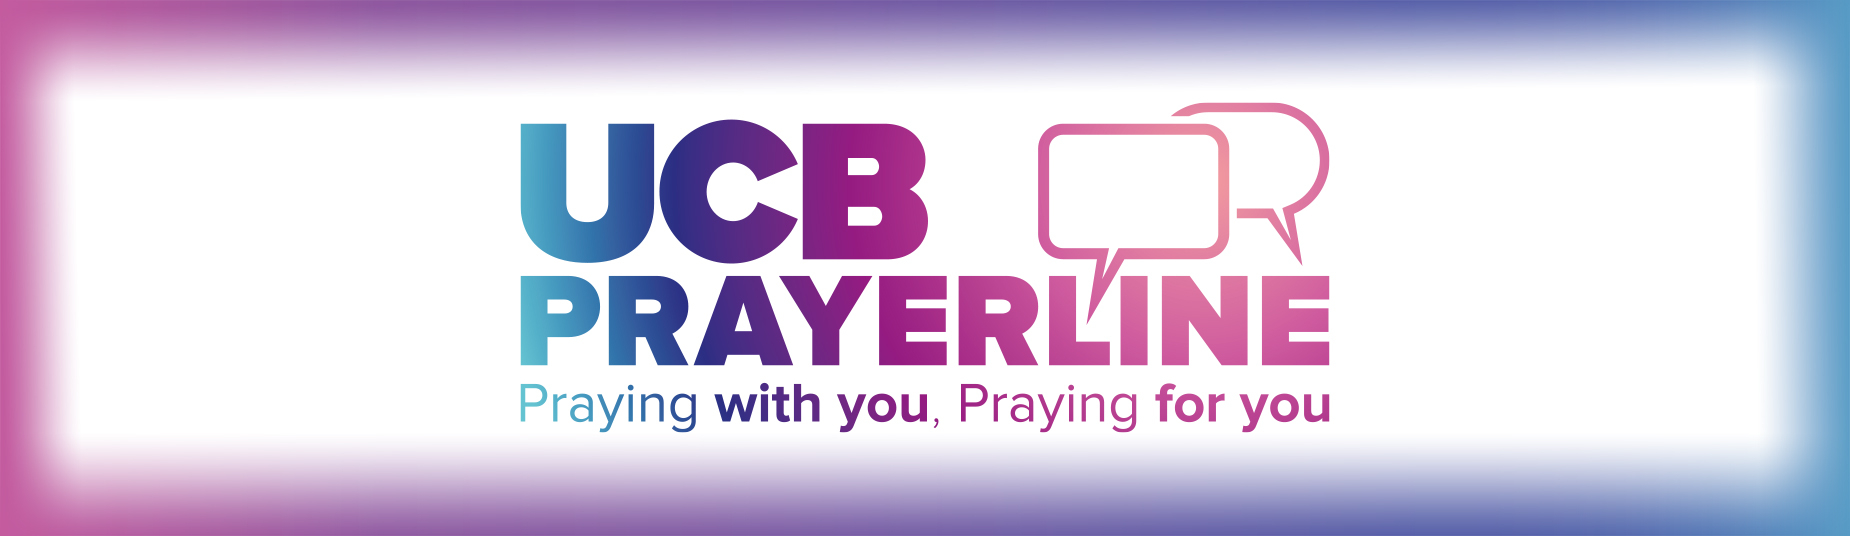 UCB Prayerline : Praying with you, praying for you